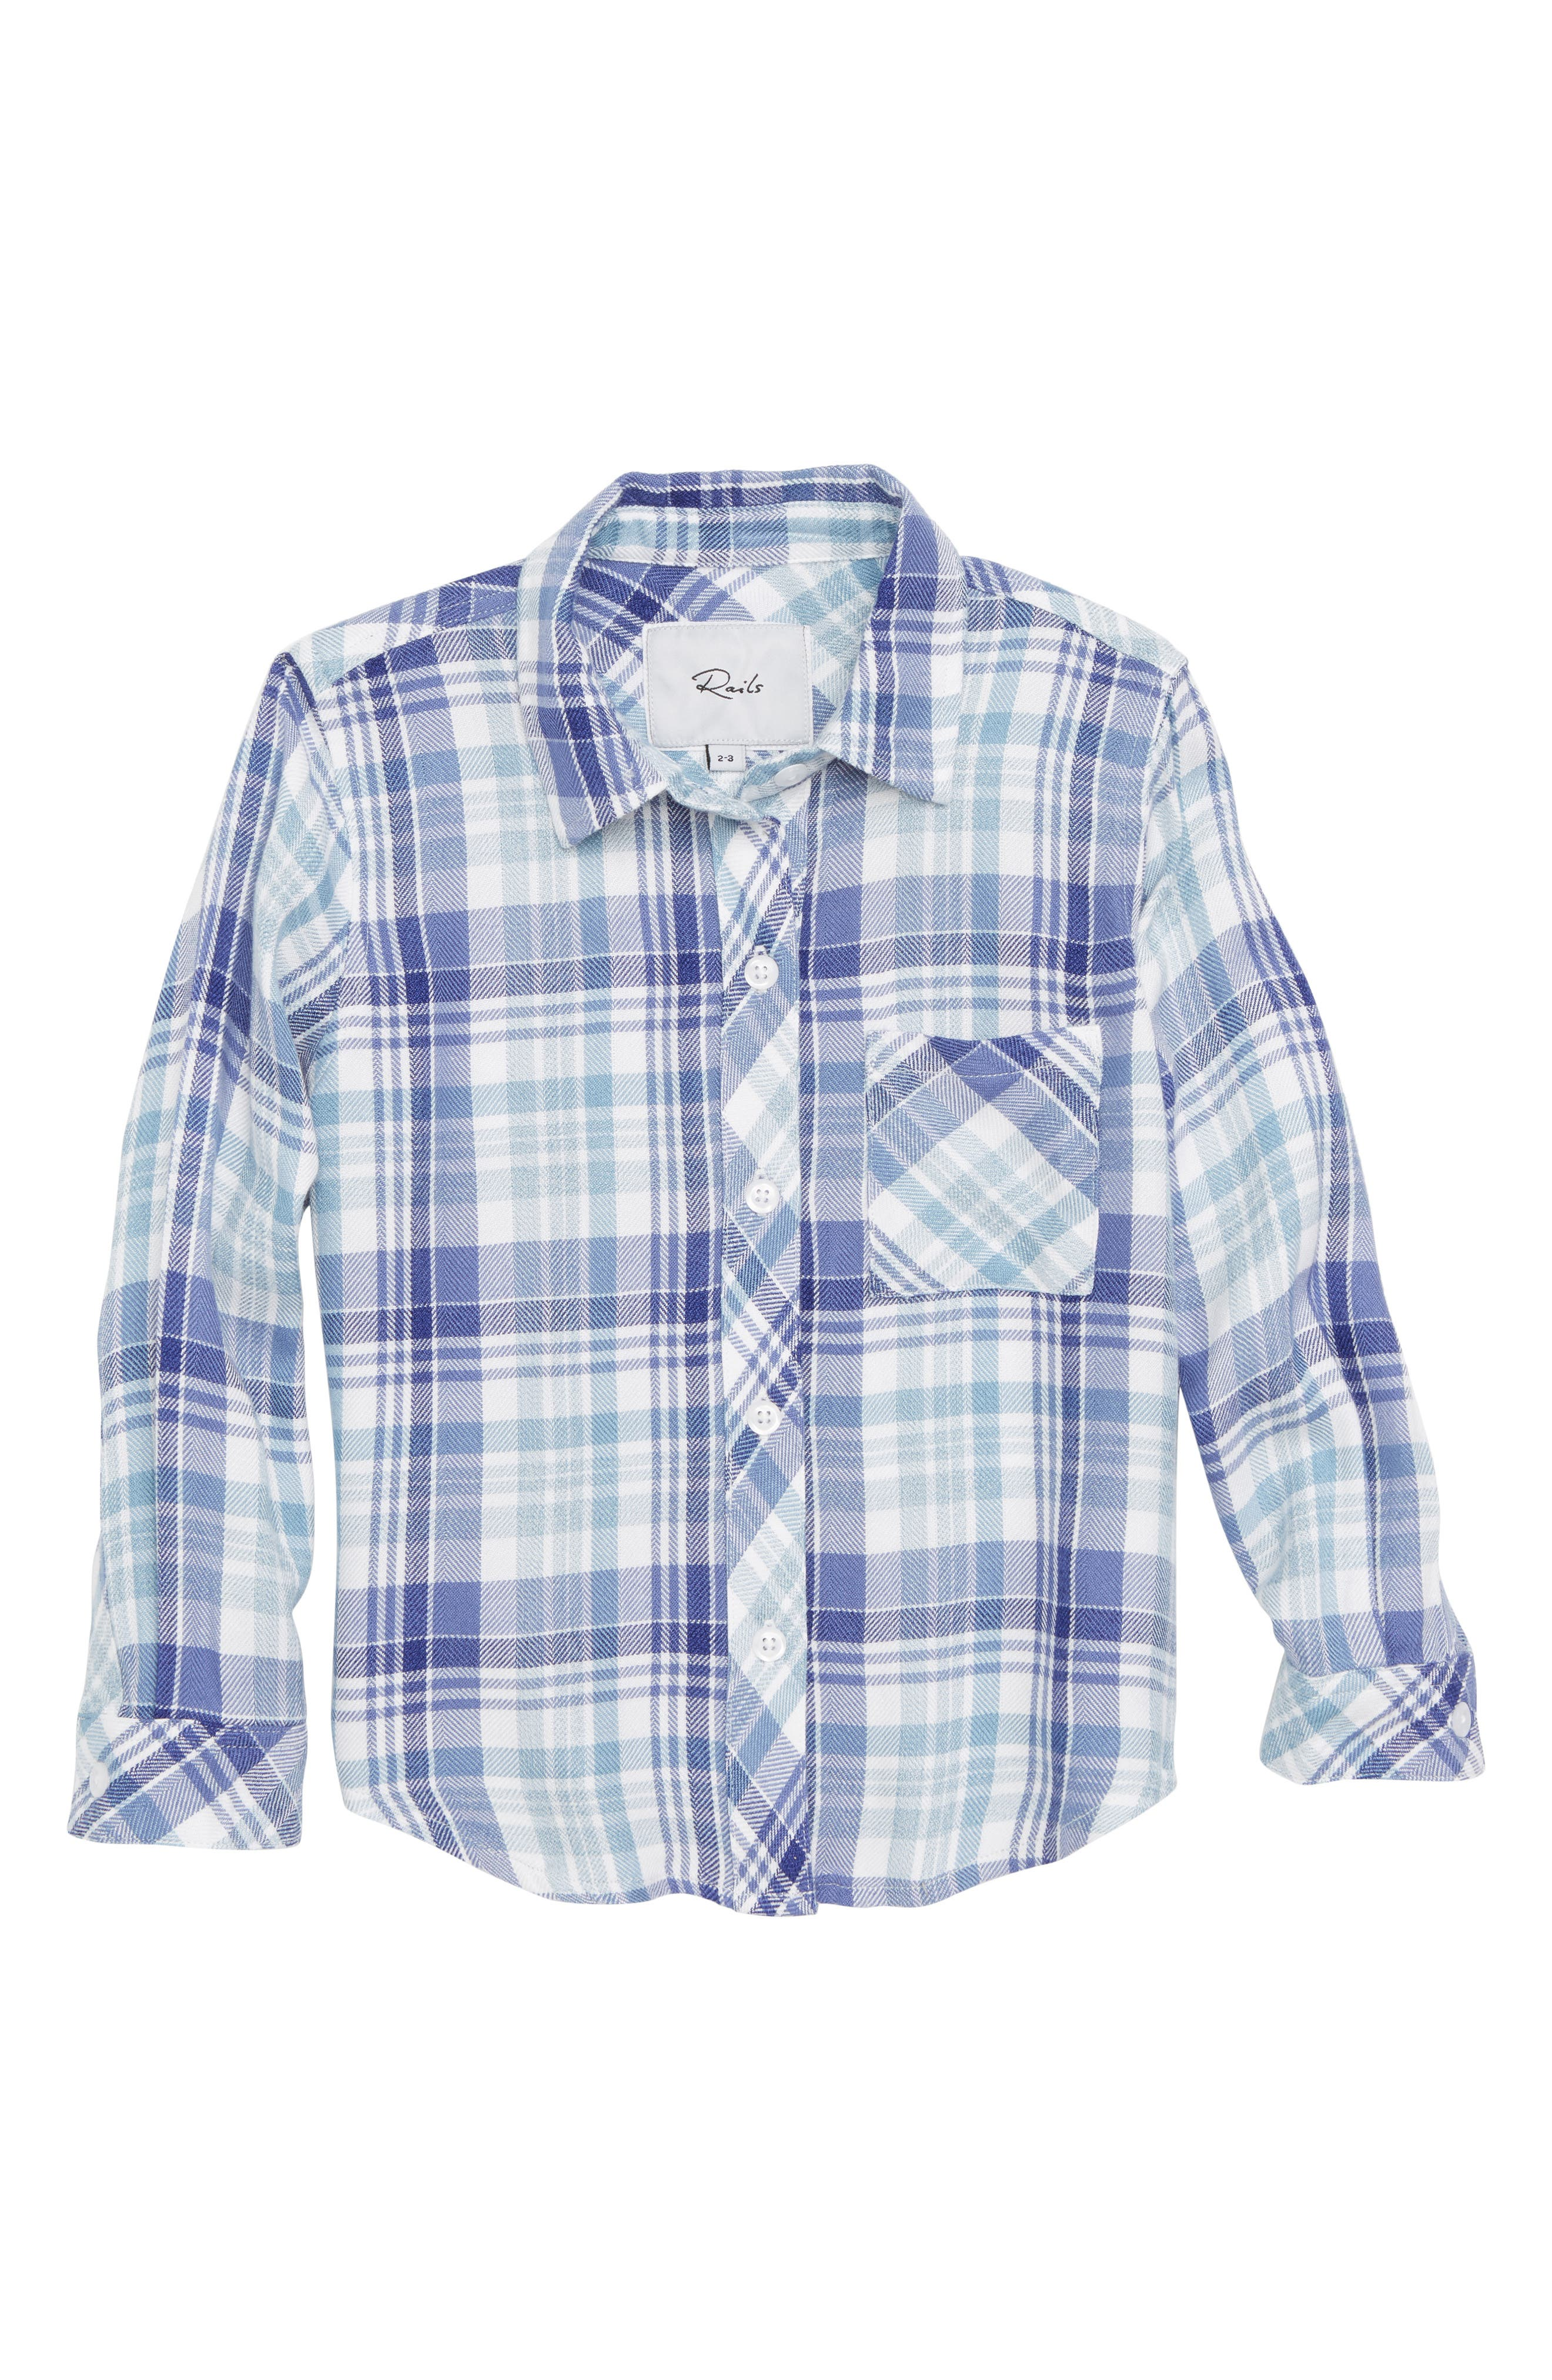 Hudson Plaid Shirt,                             Main thumbnail 1, color,                             Laguna Coast